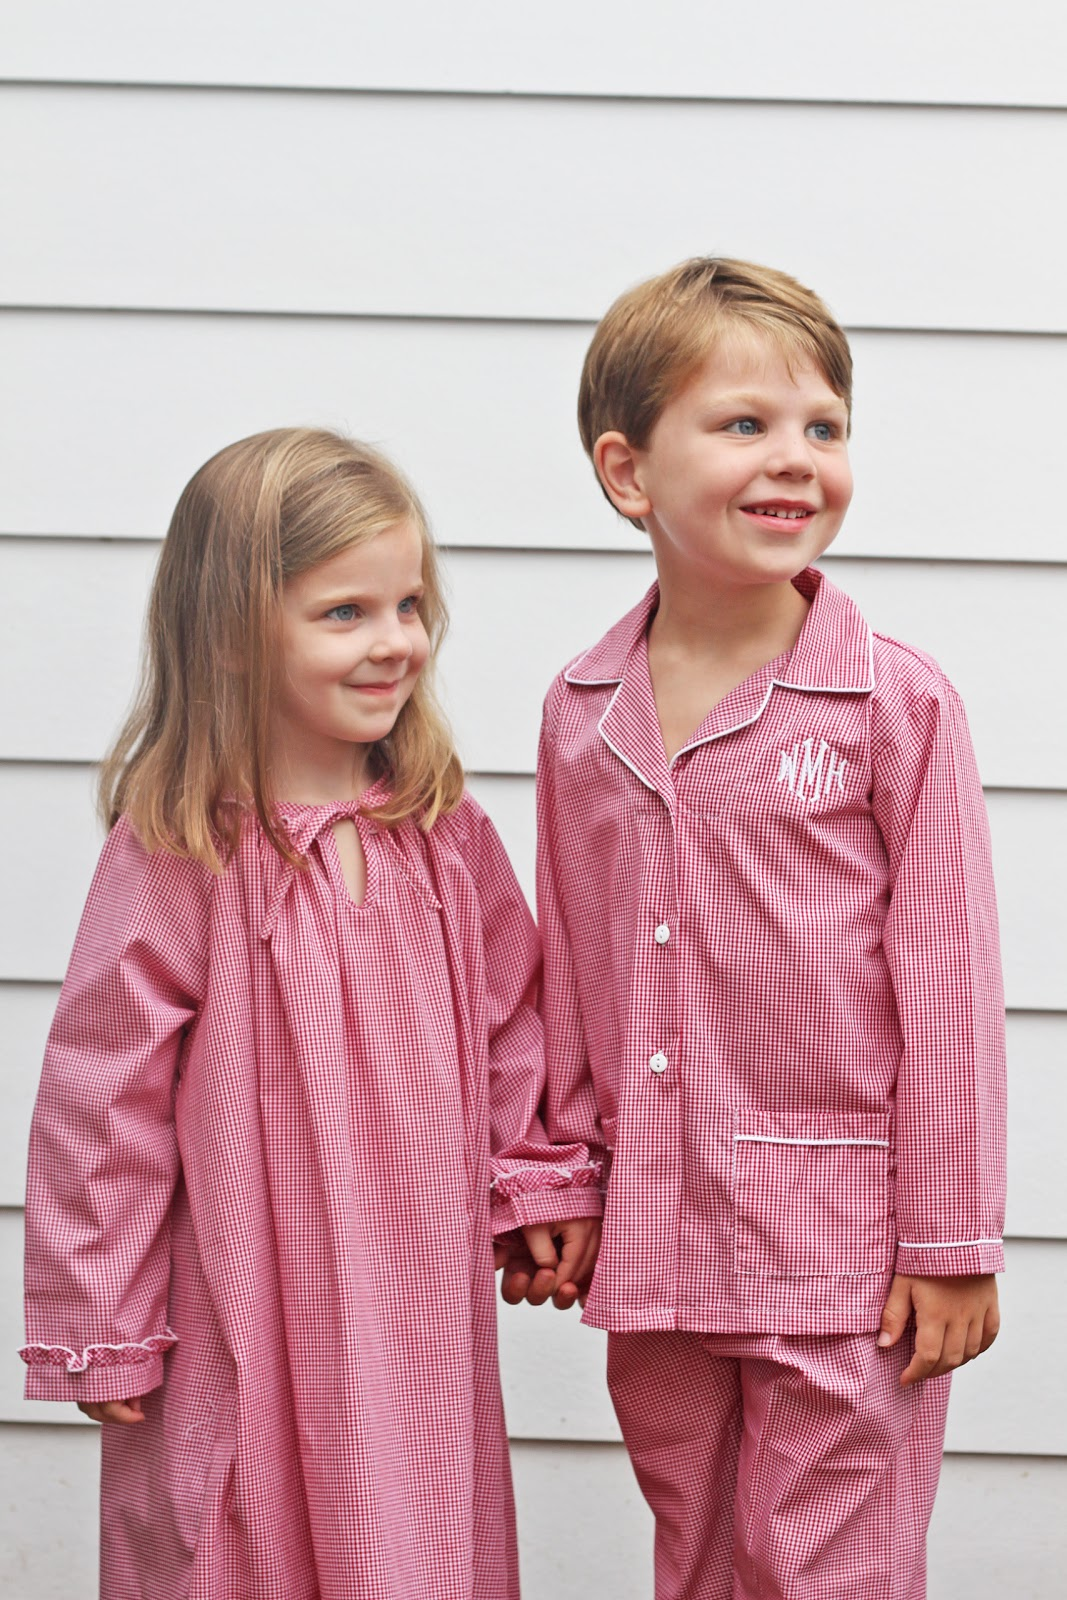 christmas morning comes in style with these adorable red gingham monogrammed childrens pajamas available in sizes 12m to 8 in pajama style or ruffled